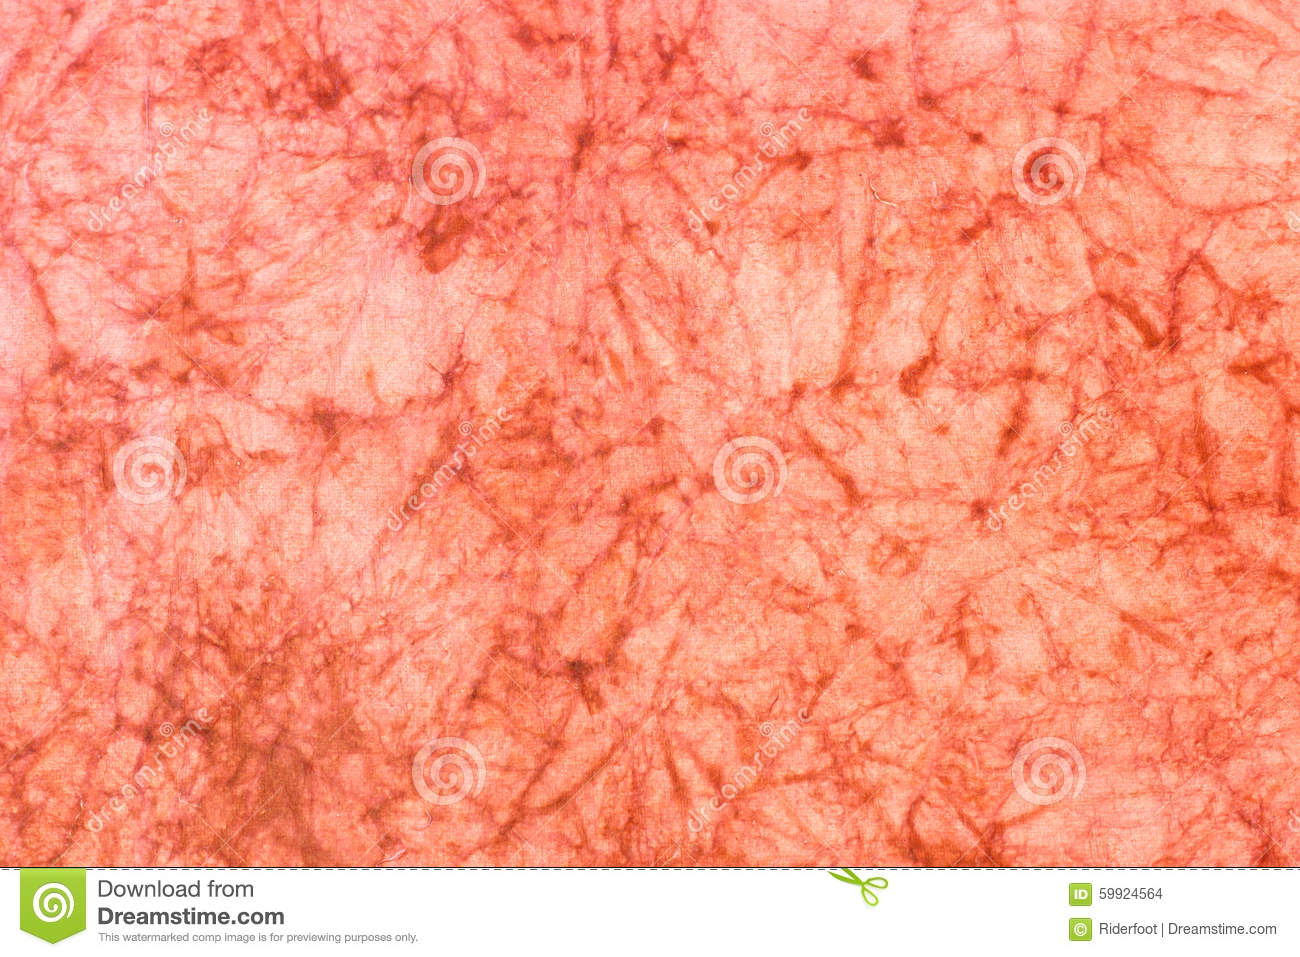 3d Live Rose Wallpaper Free Download Download Red Marble Wallpaper Gallery